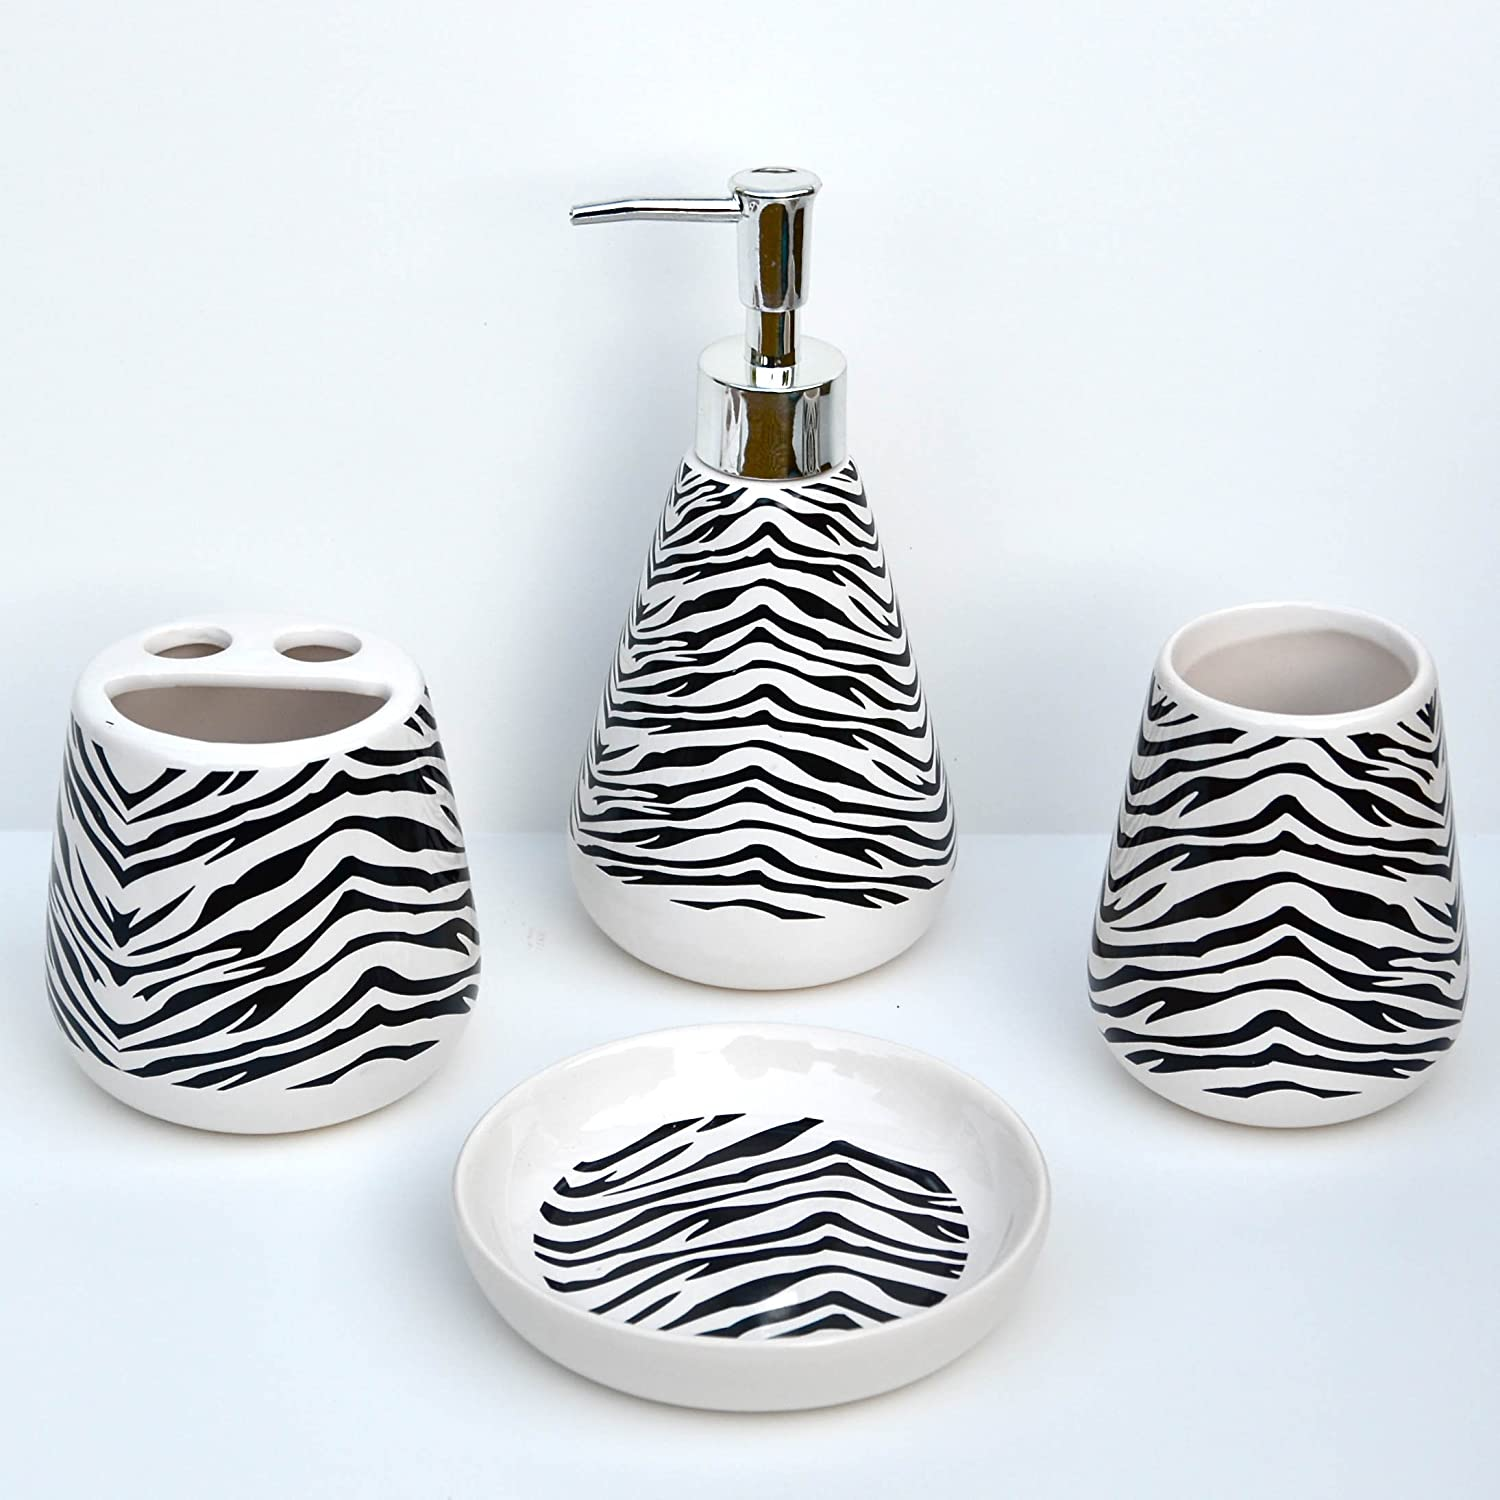 Black Bathroom Accessories Set Black Bathroom Accessories Good Home Finds